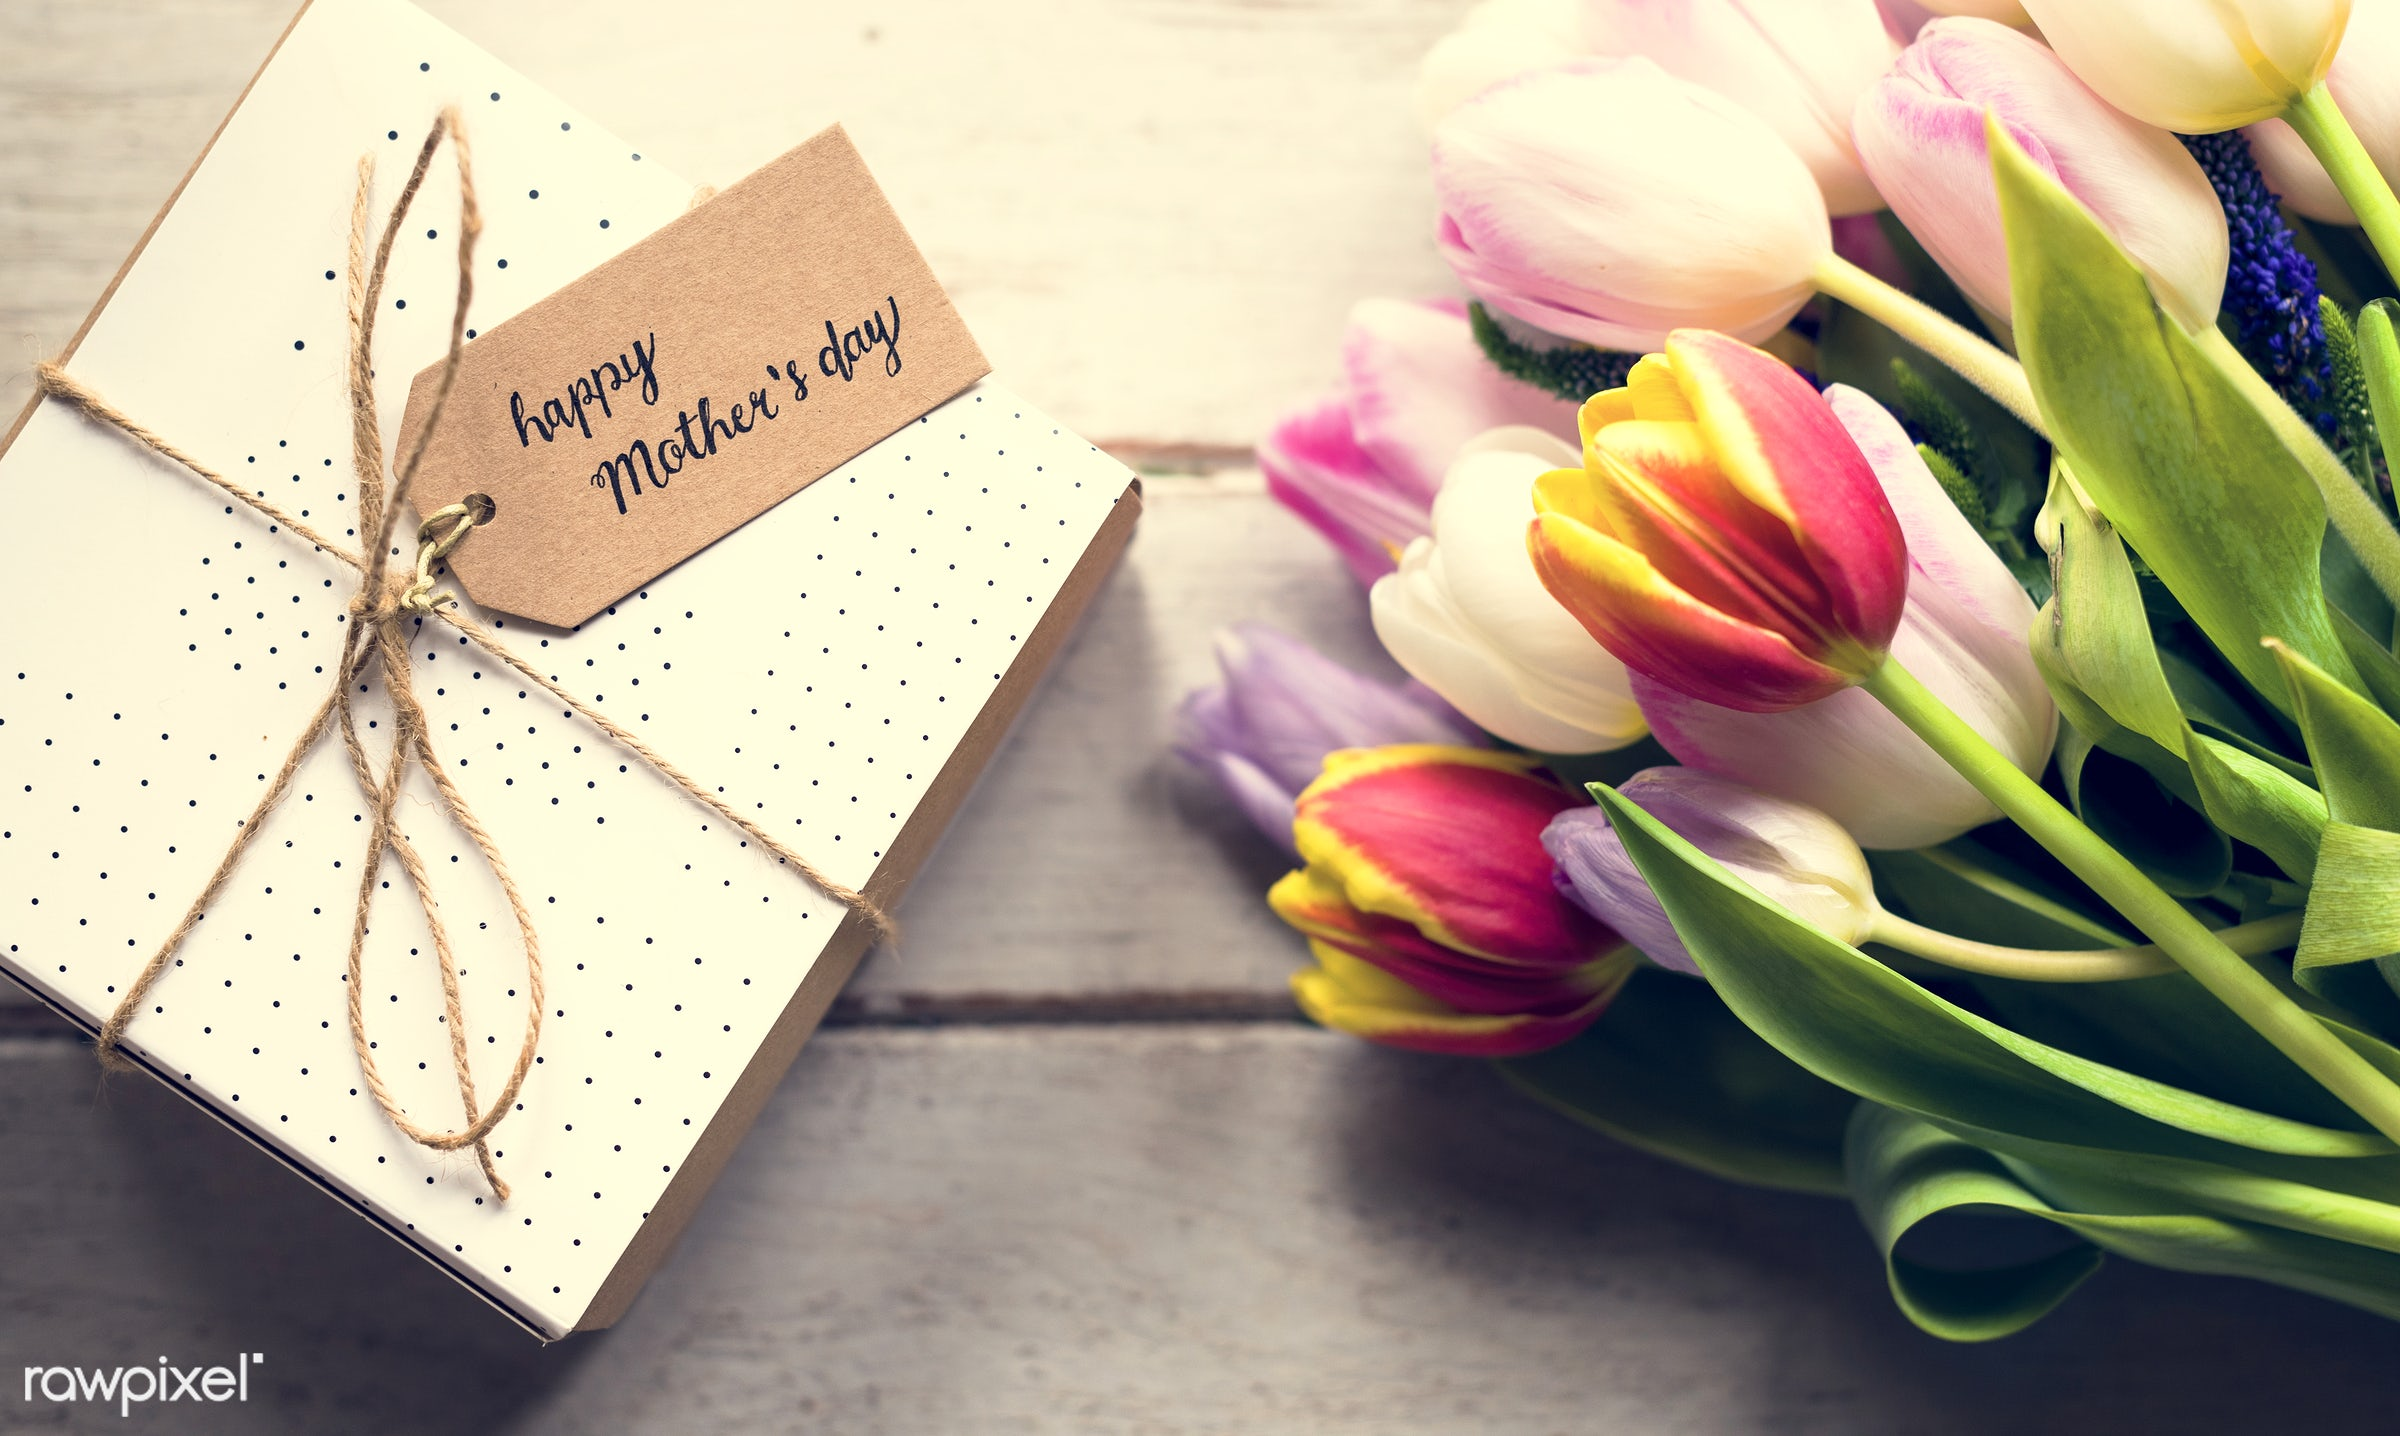 bouquet, nobody, detail, wrapped, tag, decor, nature, card, flowers, cheerful, flower, greeting, refreshment, present,...